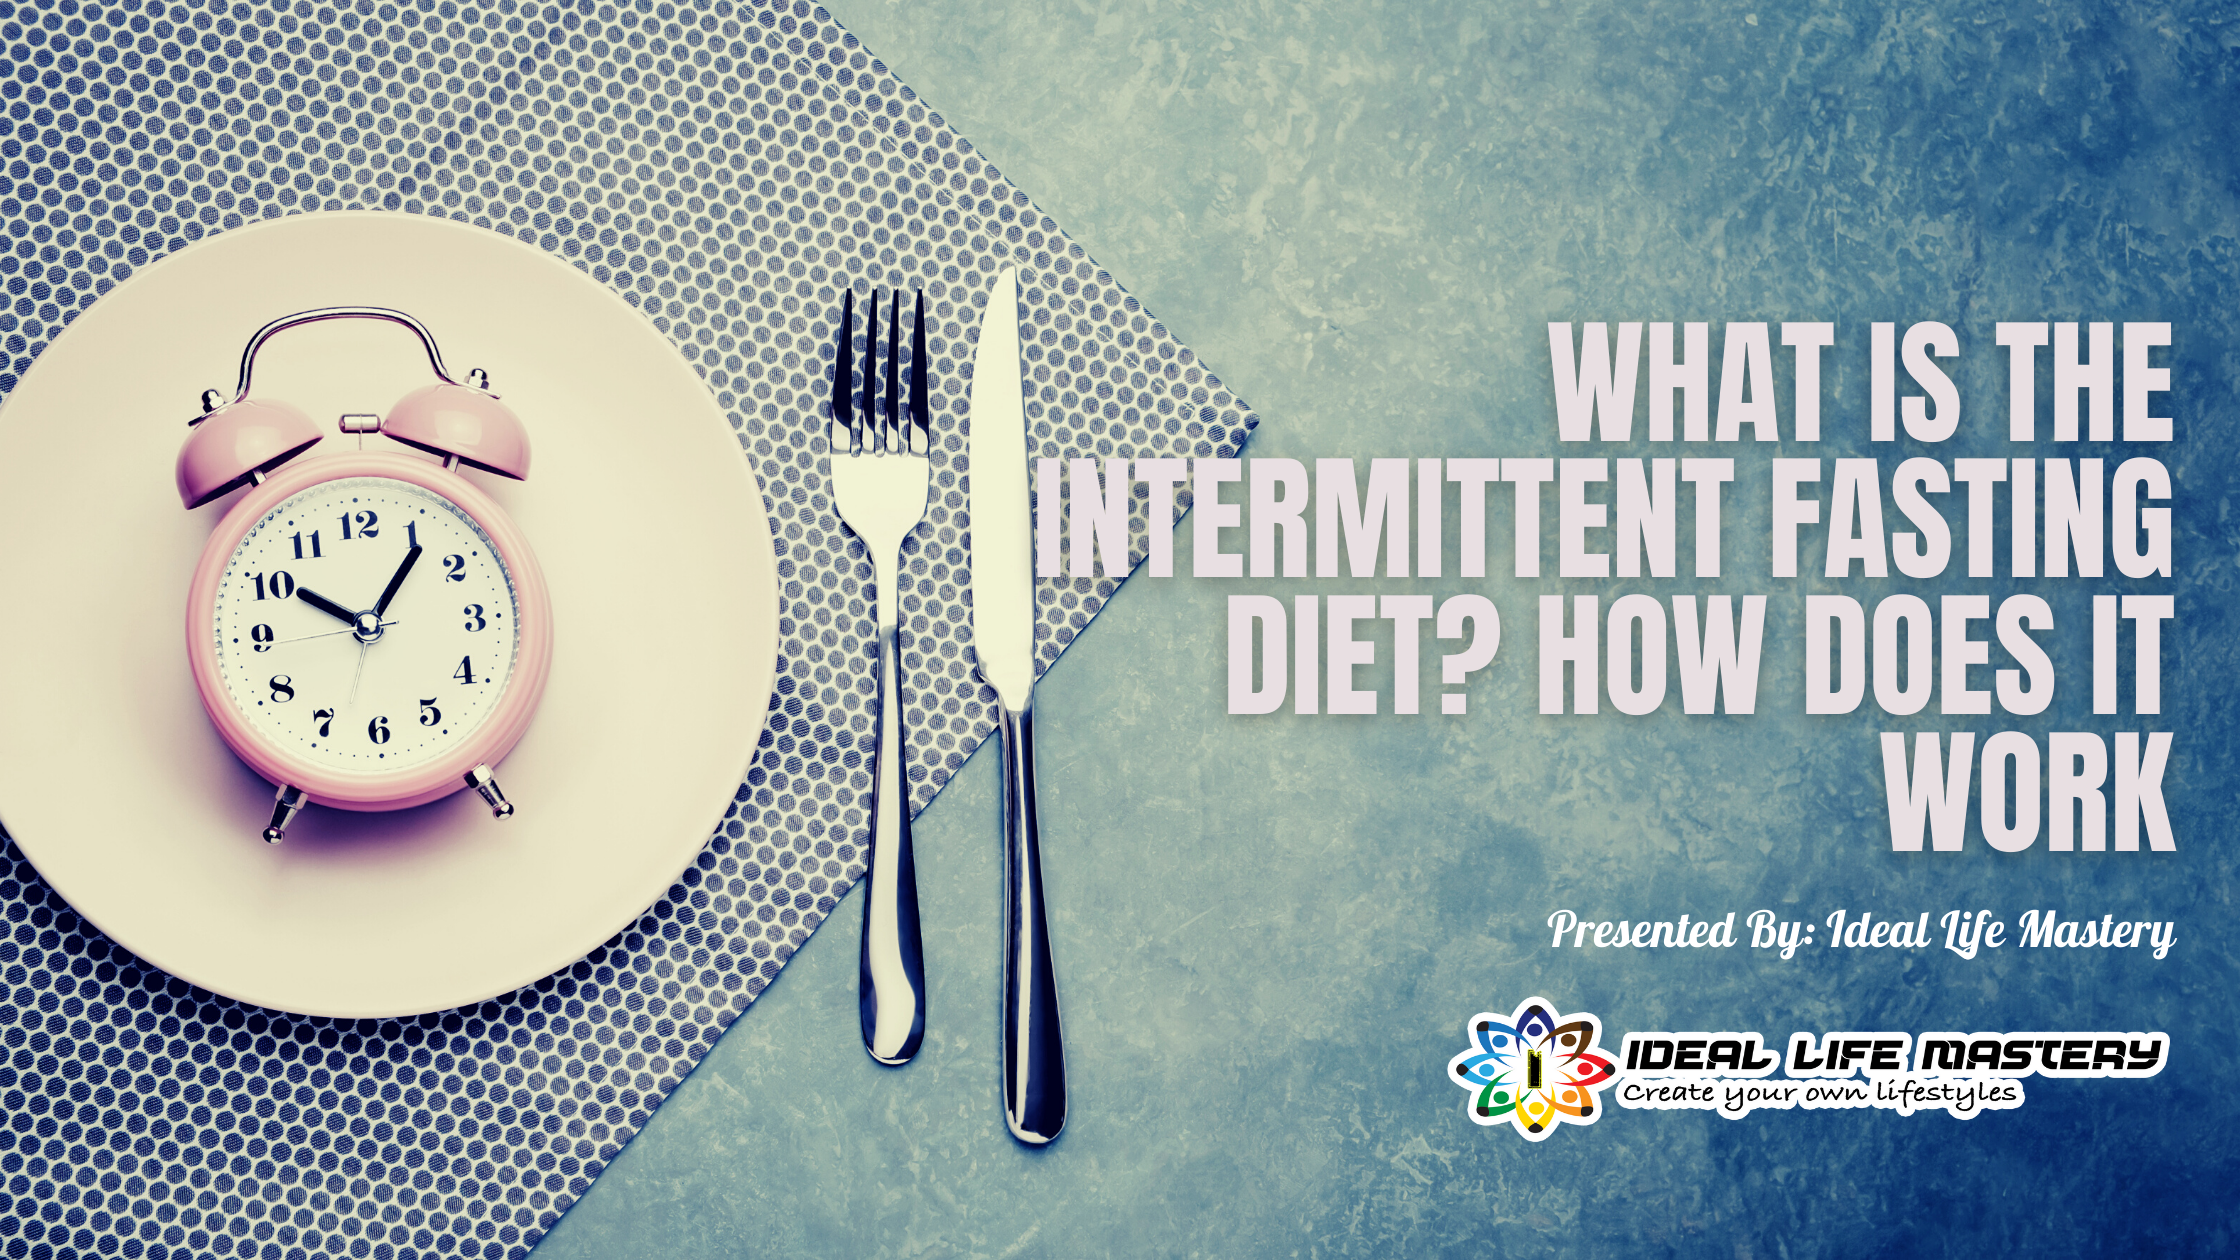 What Is The Intermittent Fasting Diet_ How Does It Work